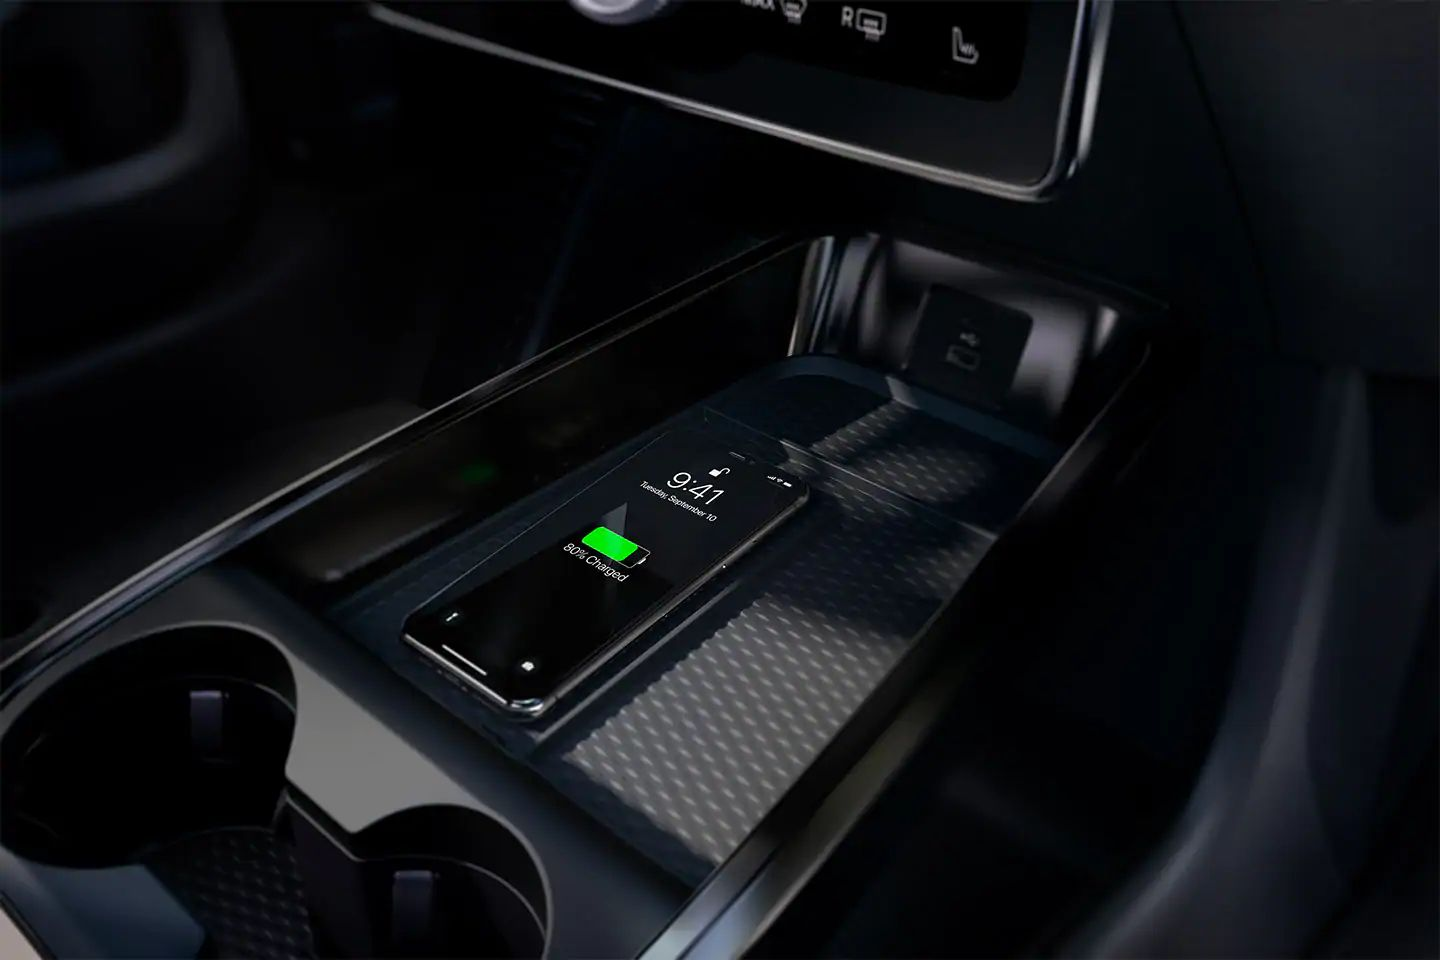 2021 Ford Mustang Mach-E Wireless Charging